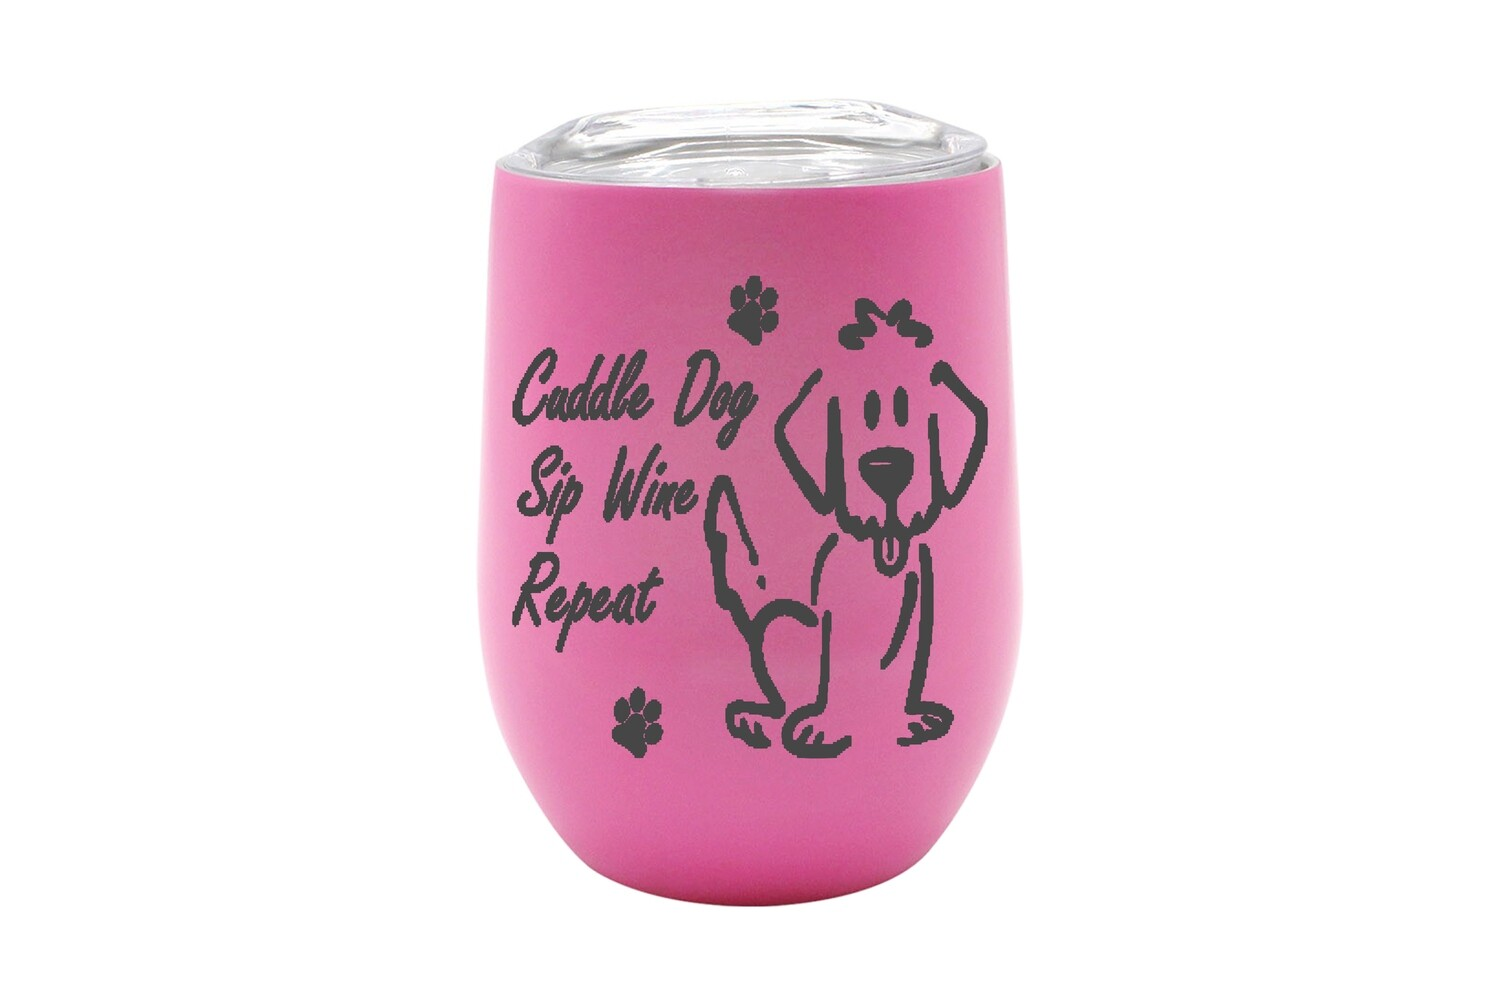 Cuddle Dog, Sip Wine, Repeat Saying Insulated Tumbler